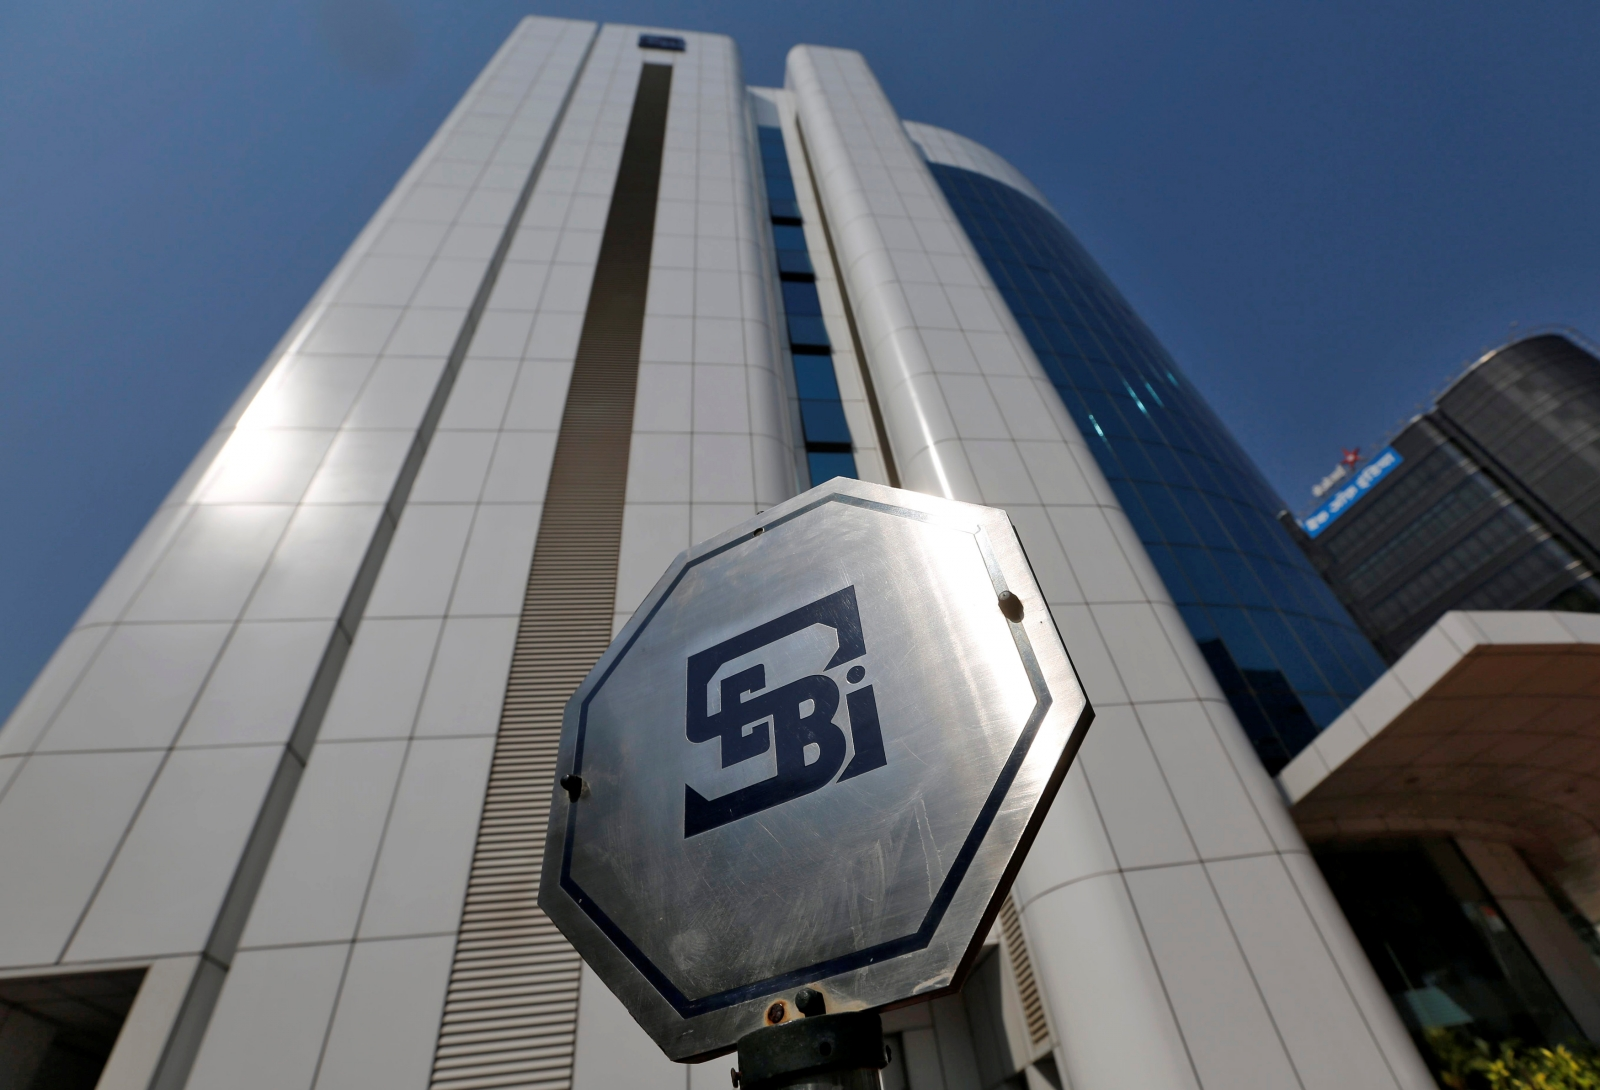 Indian market regulator Sebi forms new committee on corporate governance